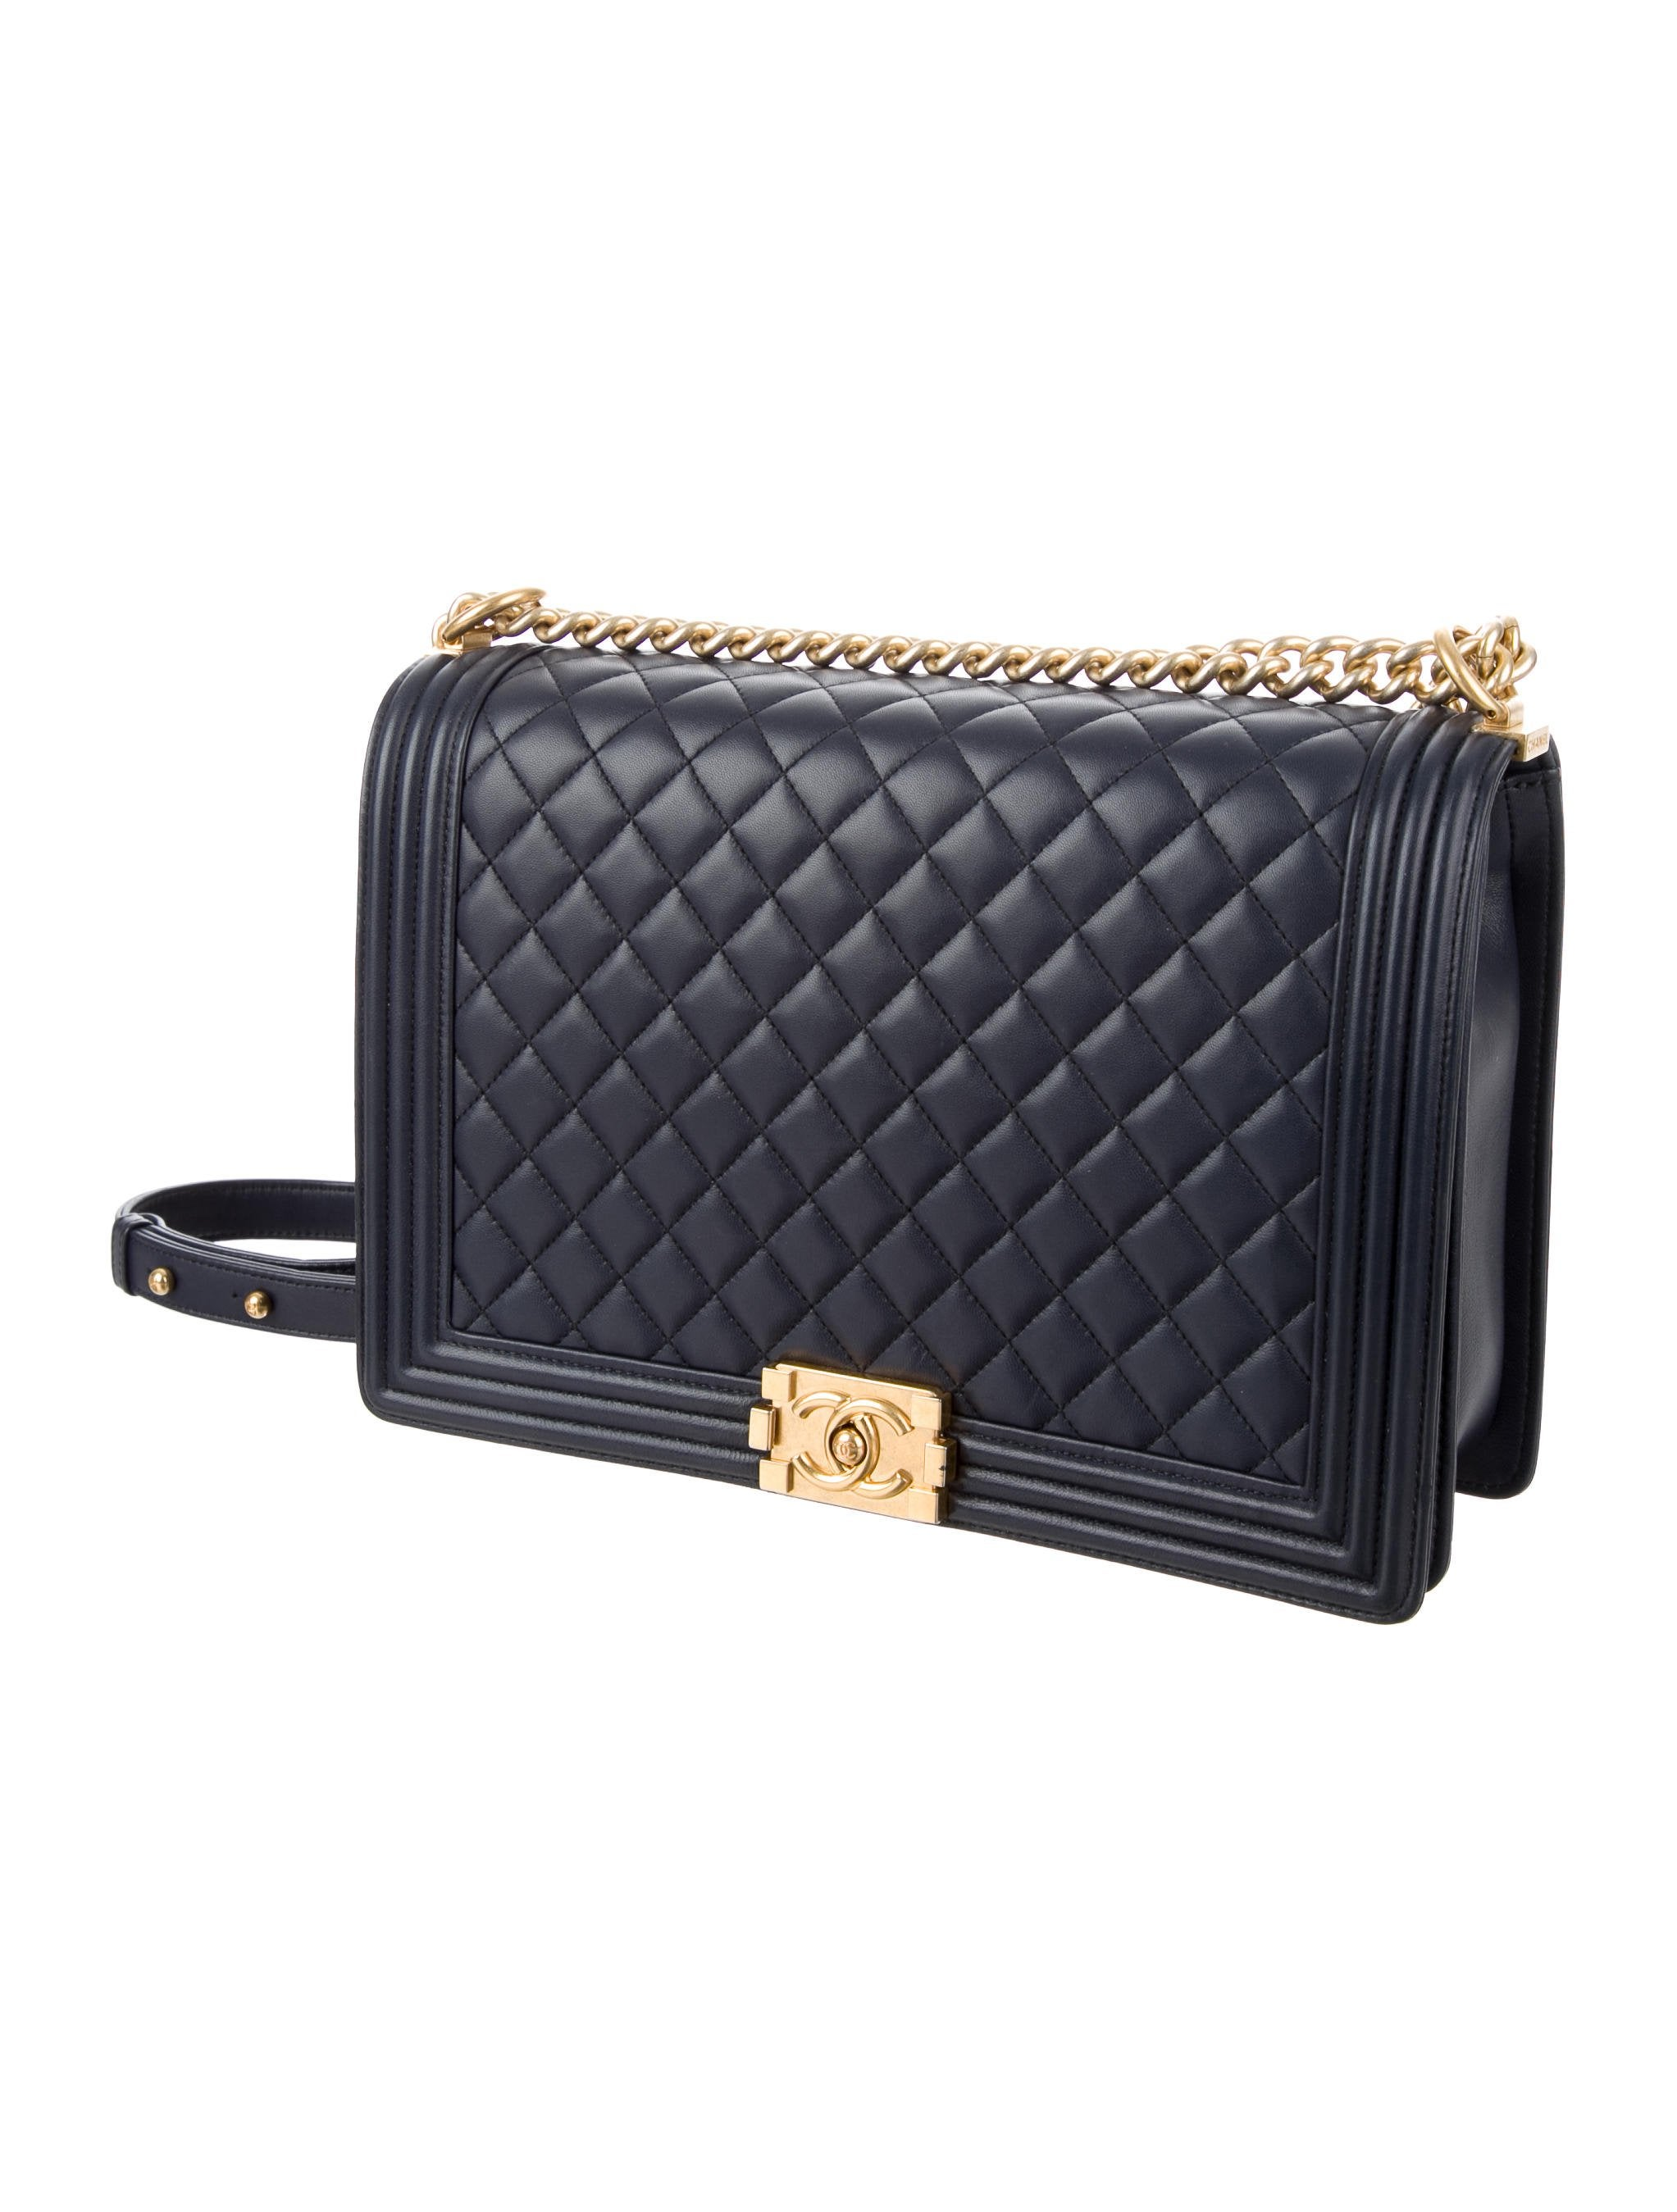 7c0f042d481924 Large Chanel Bags 2015 | Stanford Center for Opportunity Policy in ...